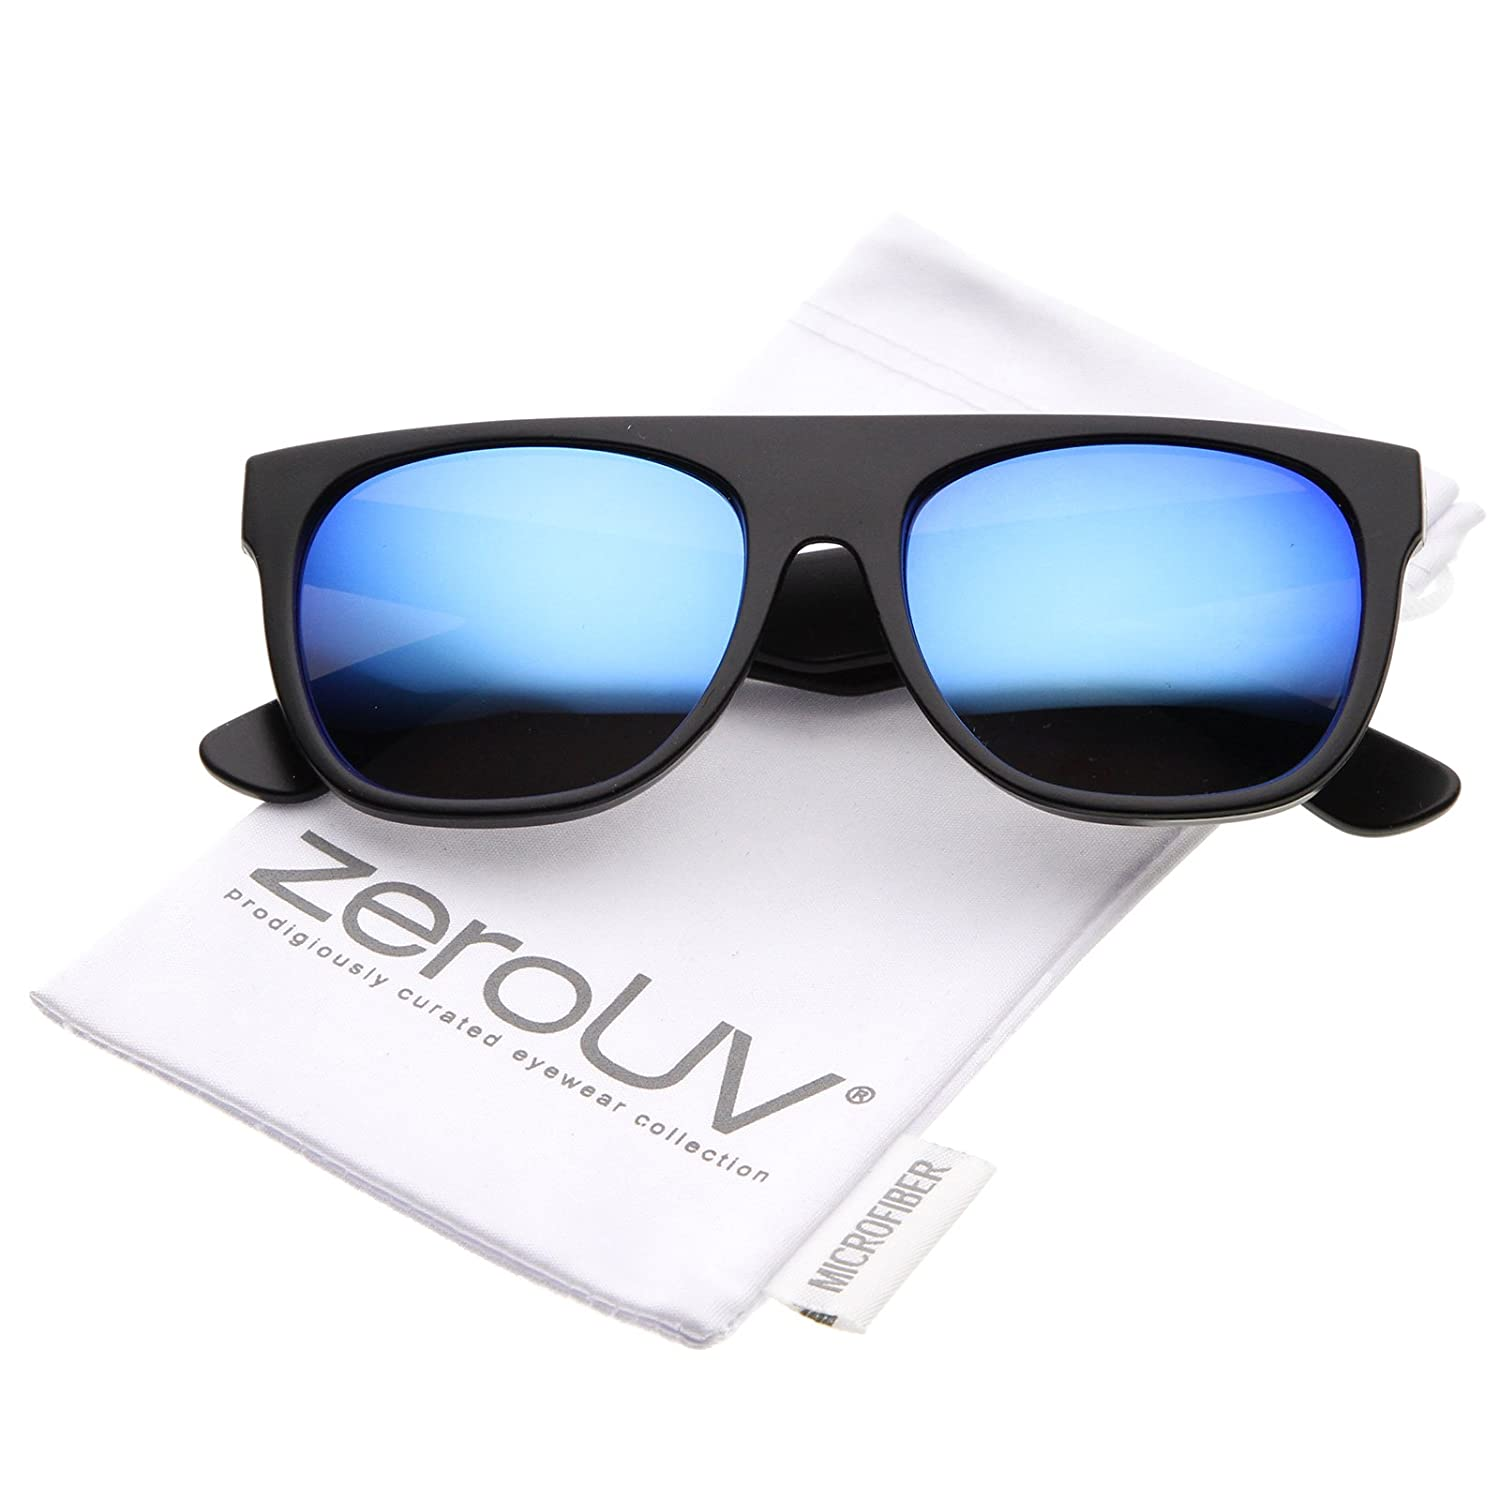 0f2878a26a Amazon.com  Modern Super Flat-Top Wide Temple Colored Mirror Lens Horn  Rimmed Sunglasses 55mm (Matte Black Blue Mirror)  Clothing